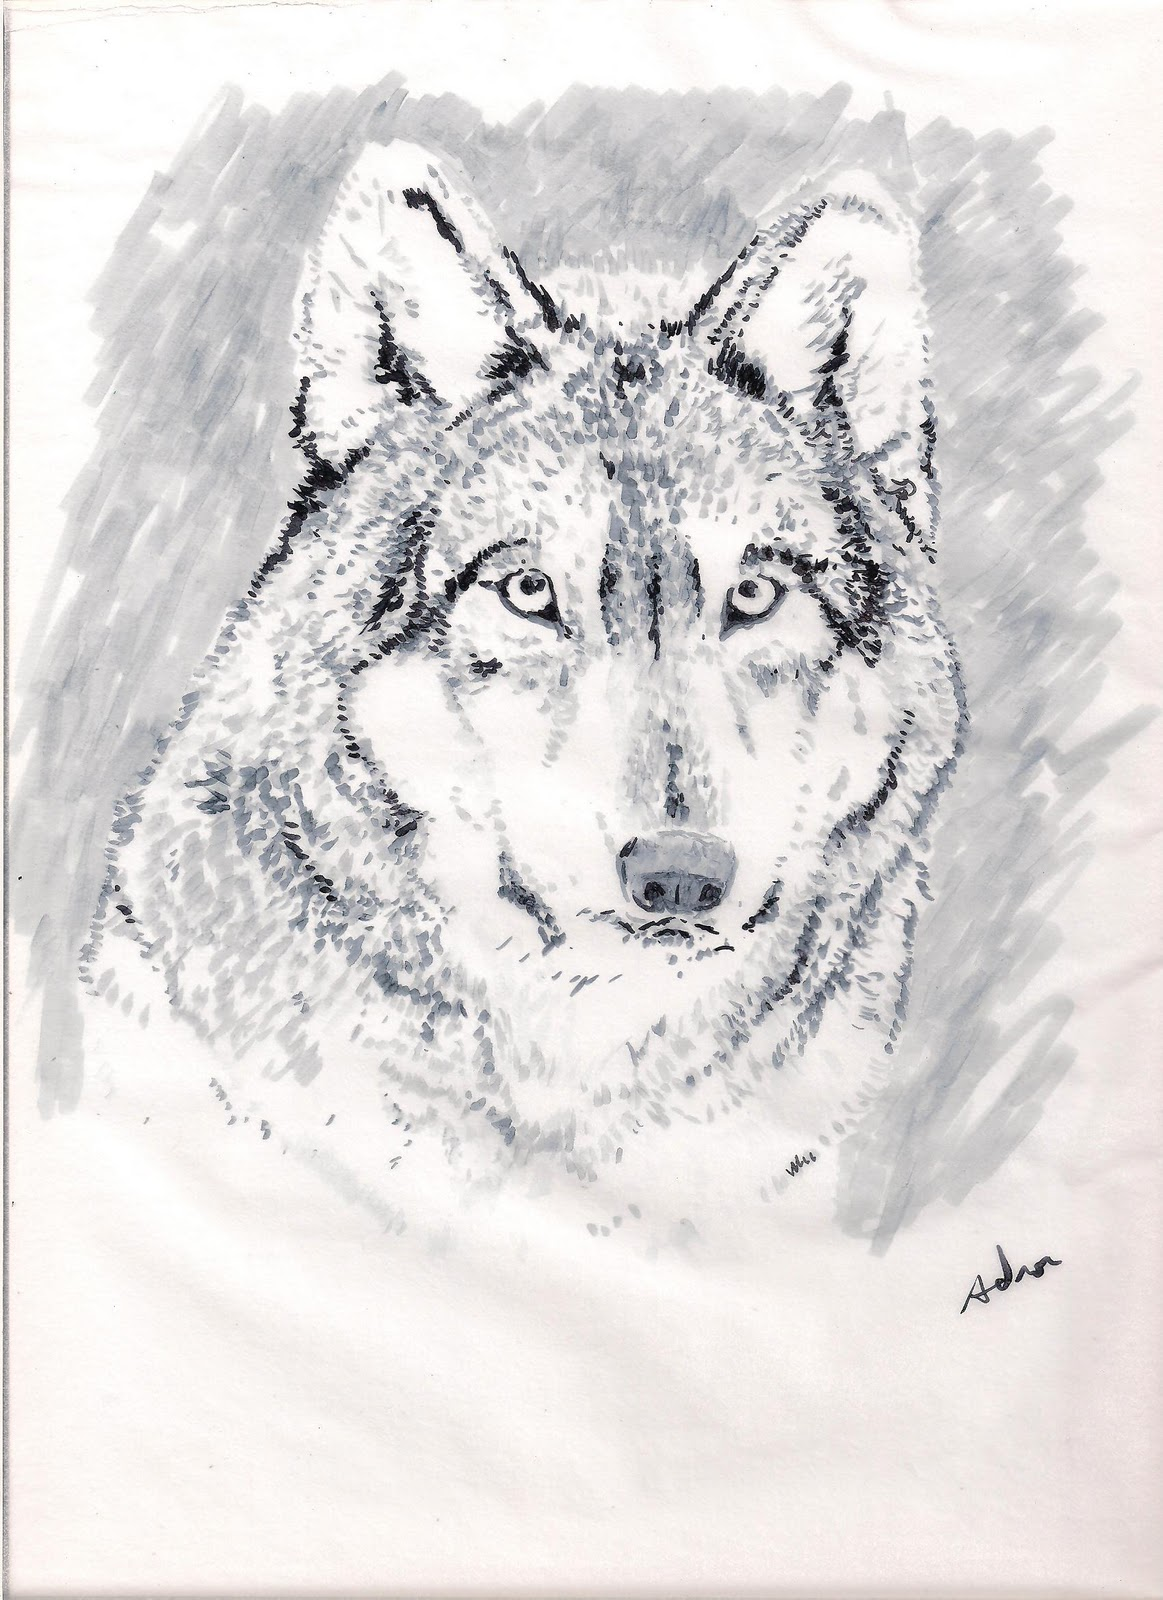 In Wolf A Draw Illustrator To How A Wolf How Drawing Draw To Draw Young The